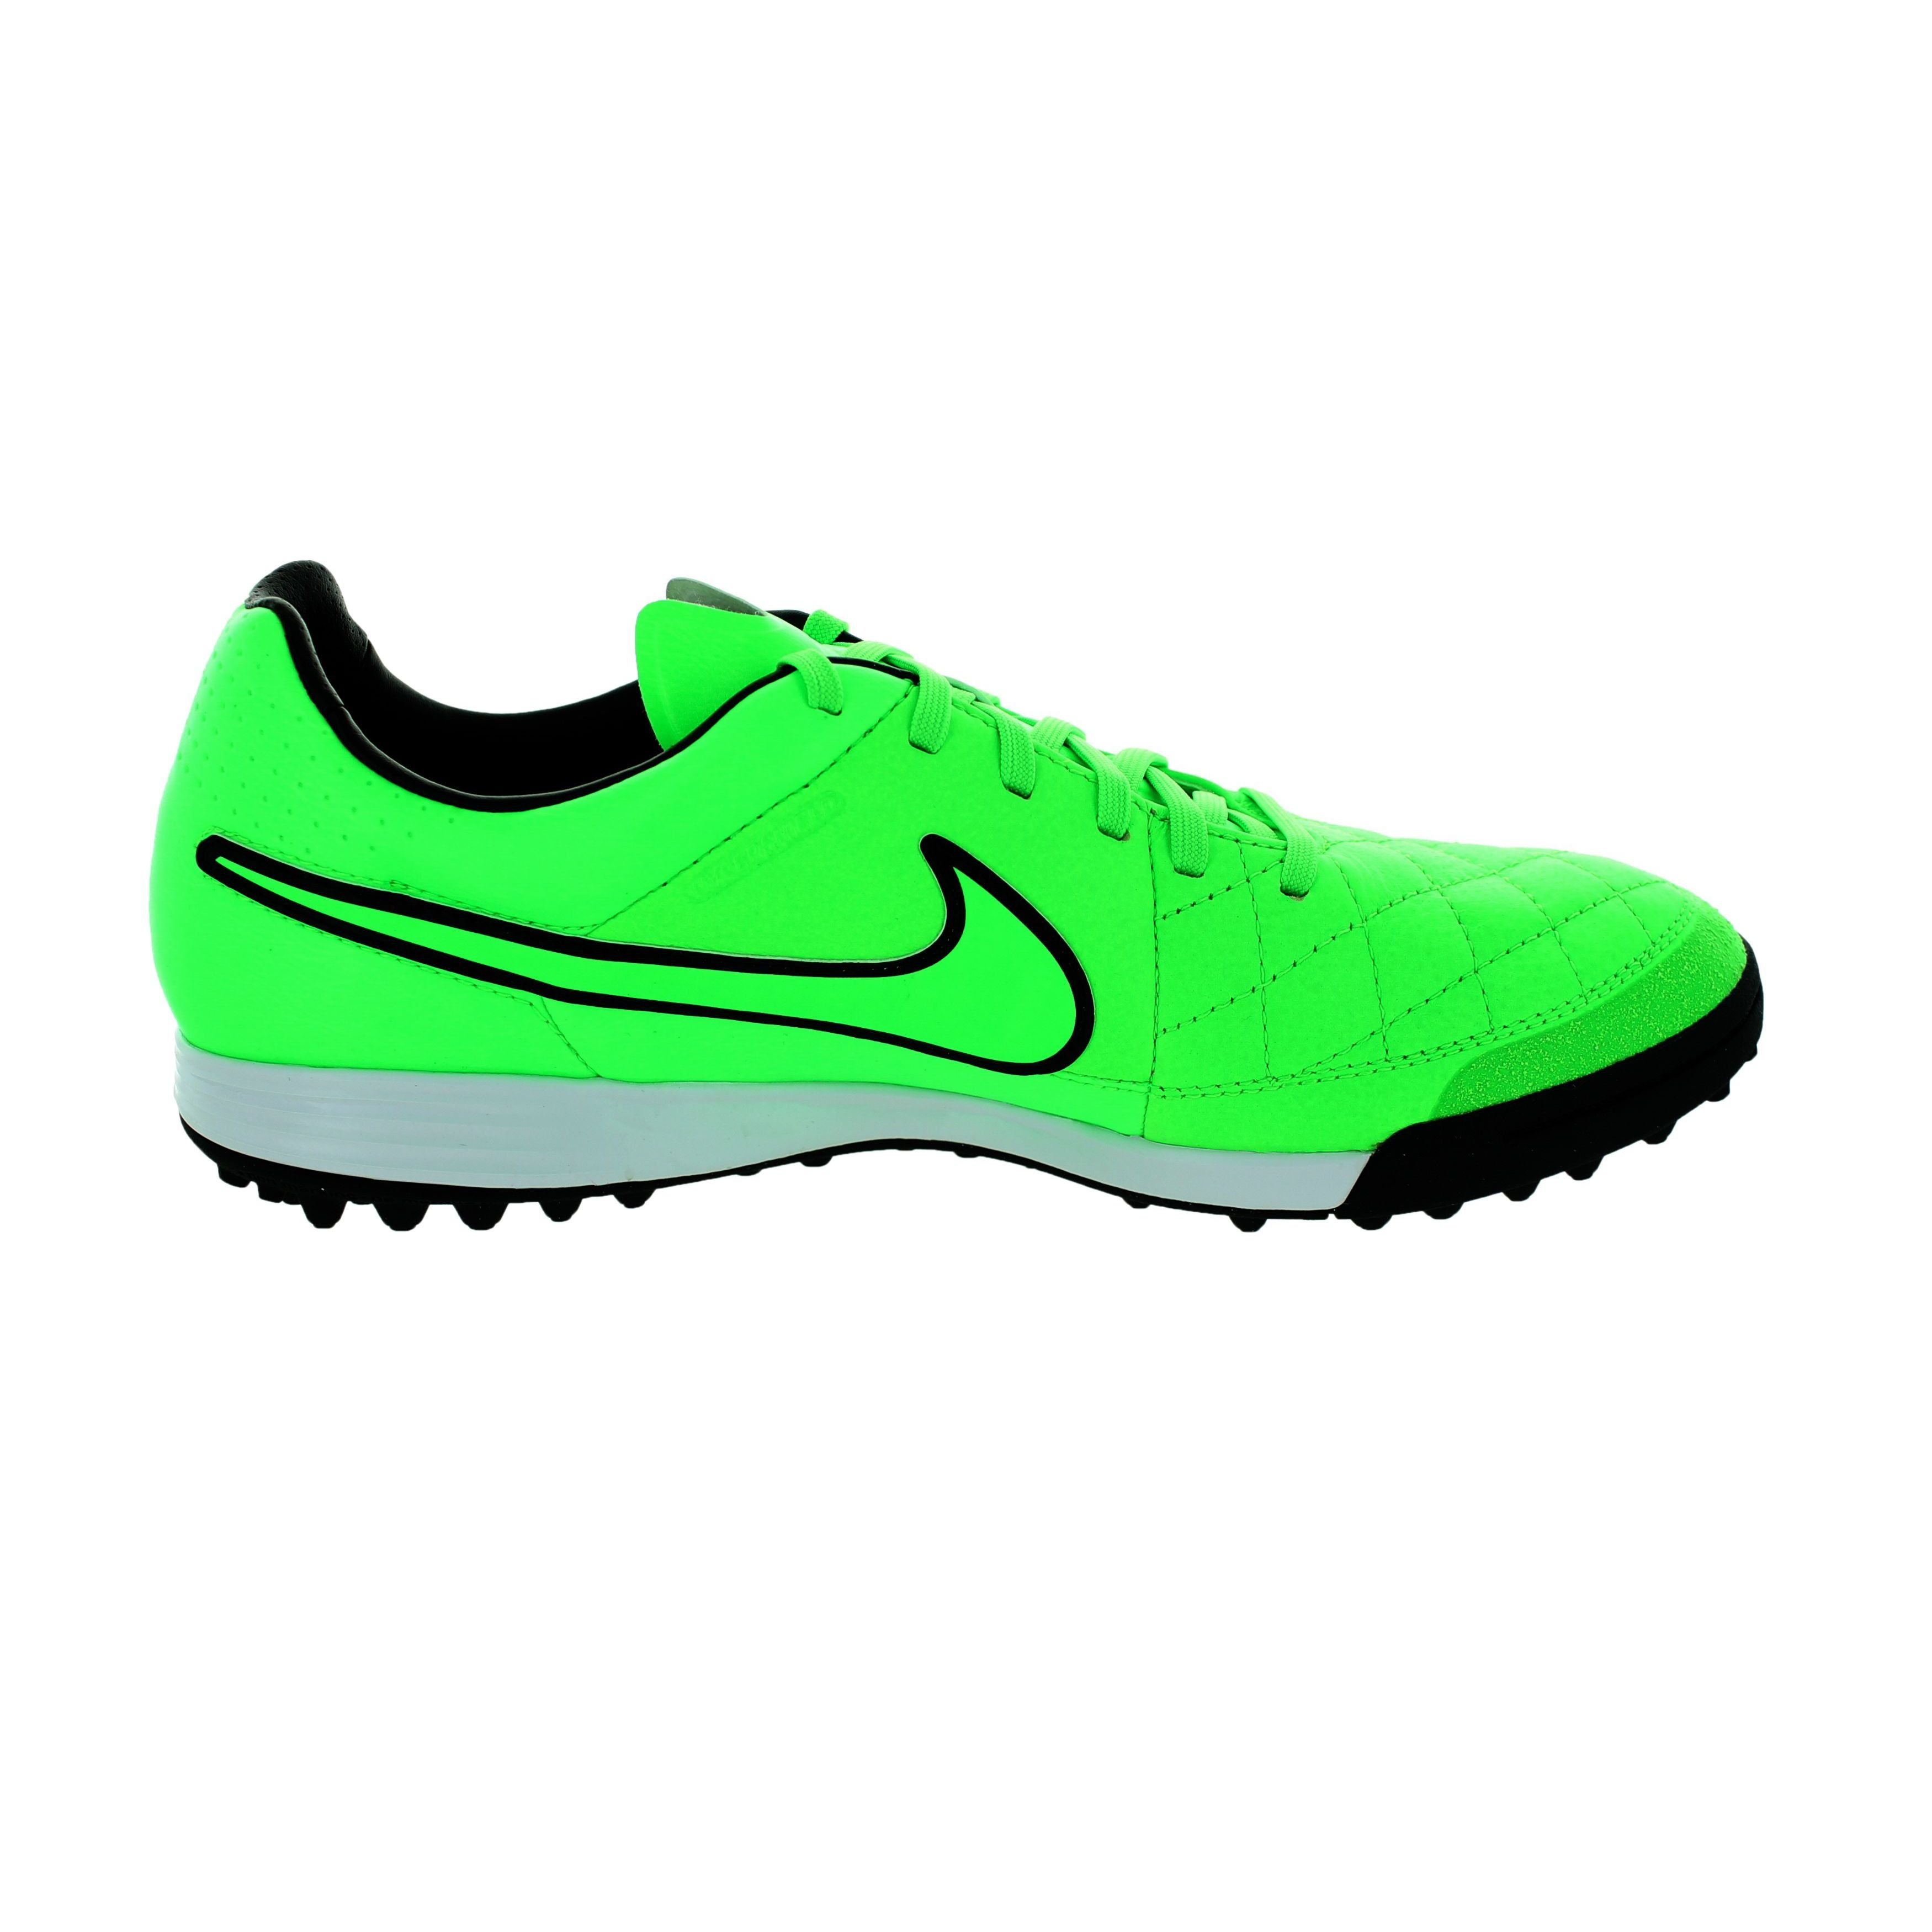 5a9ee40fd Shop Nike Men s Tiempo Legacy TF Green Strike Black Turf Soccer Shoes -  Free Shipping Today - Overstock - 12362415